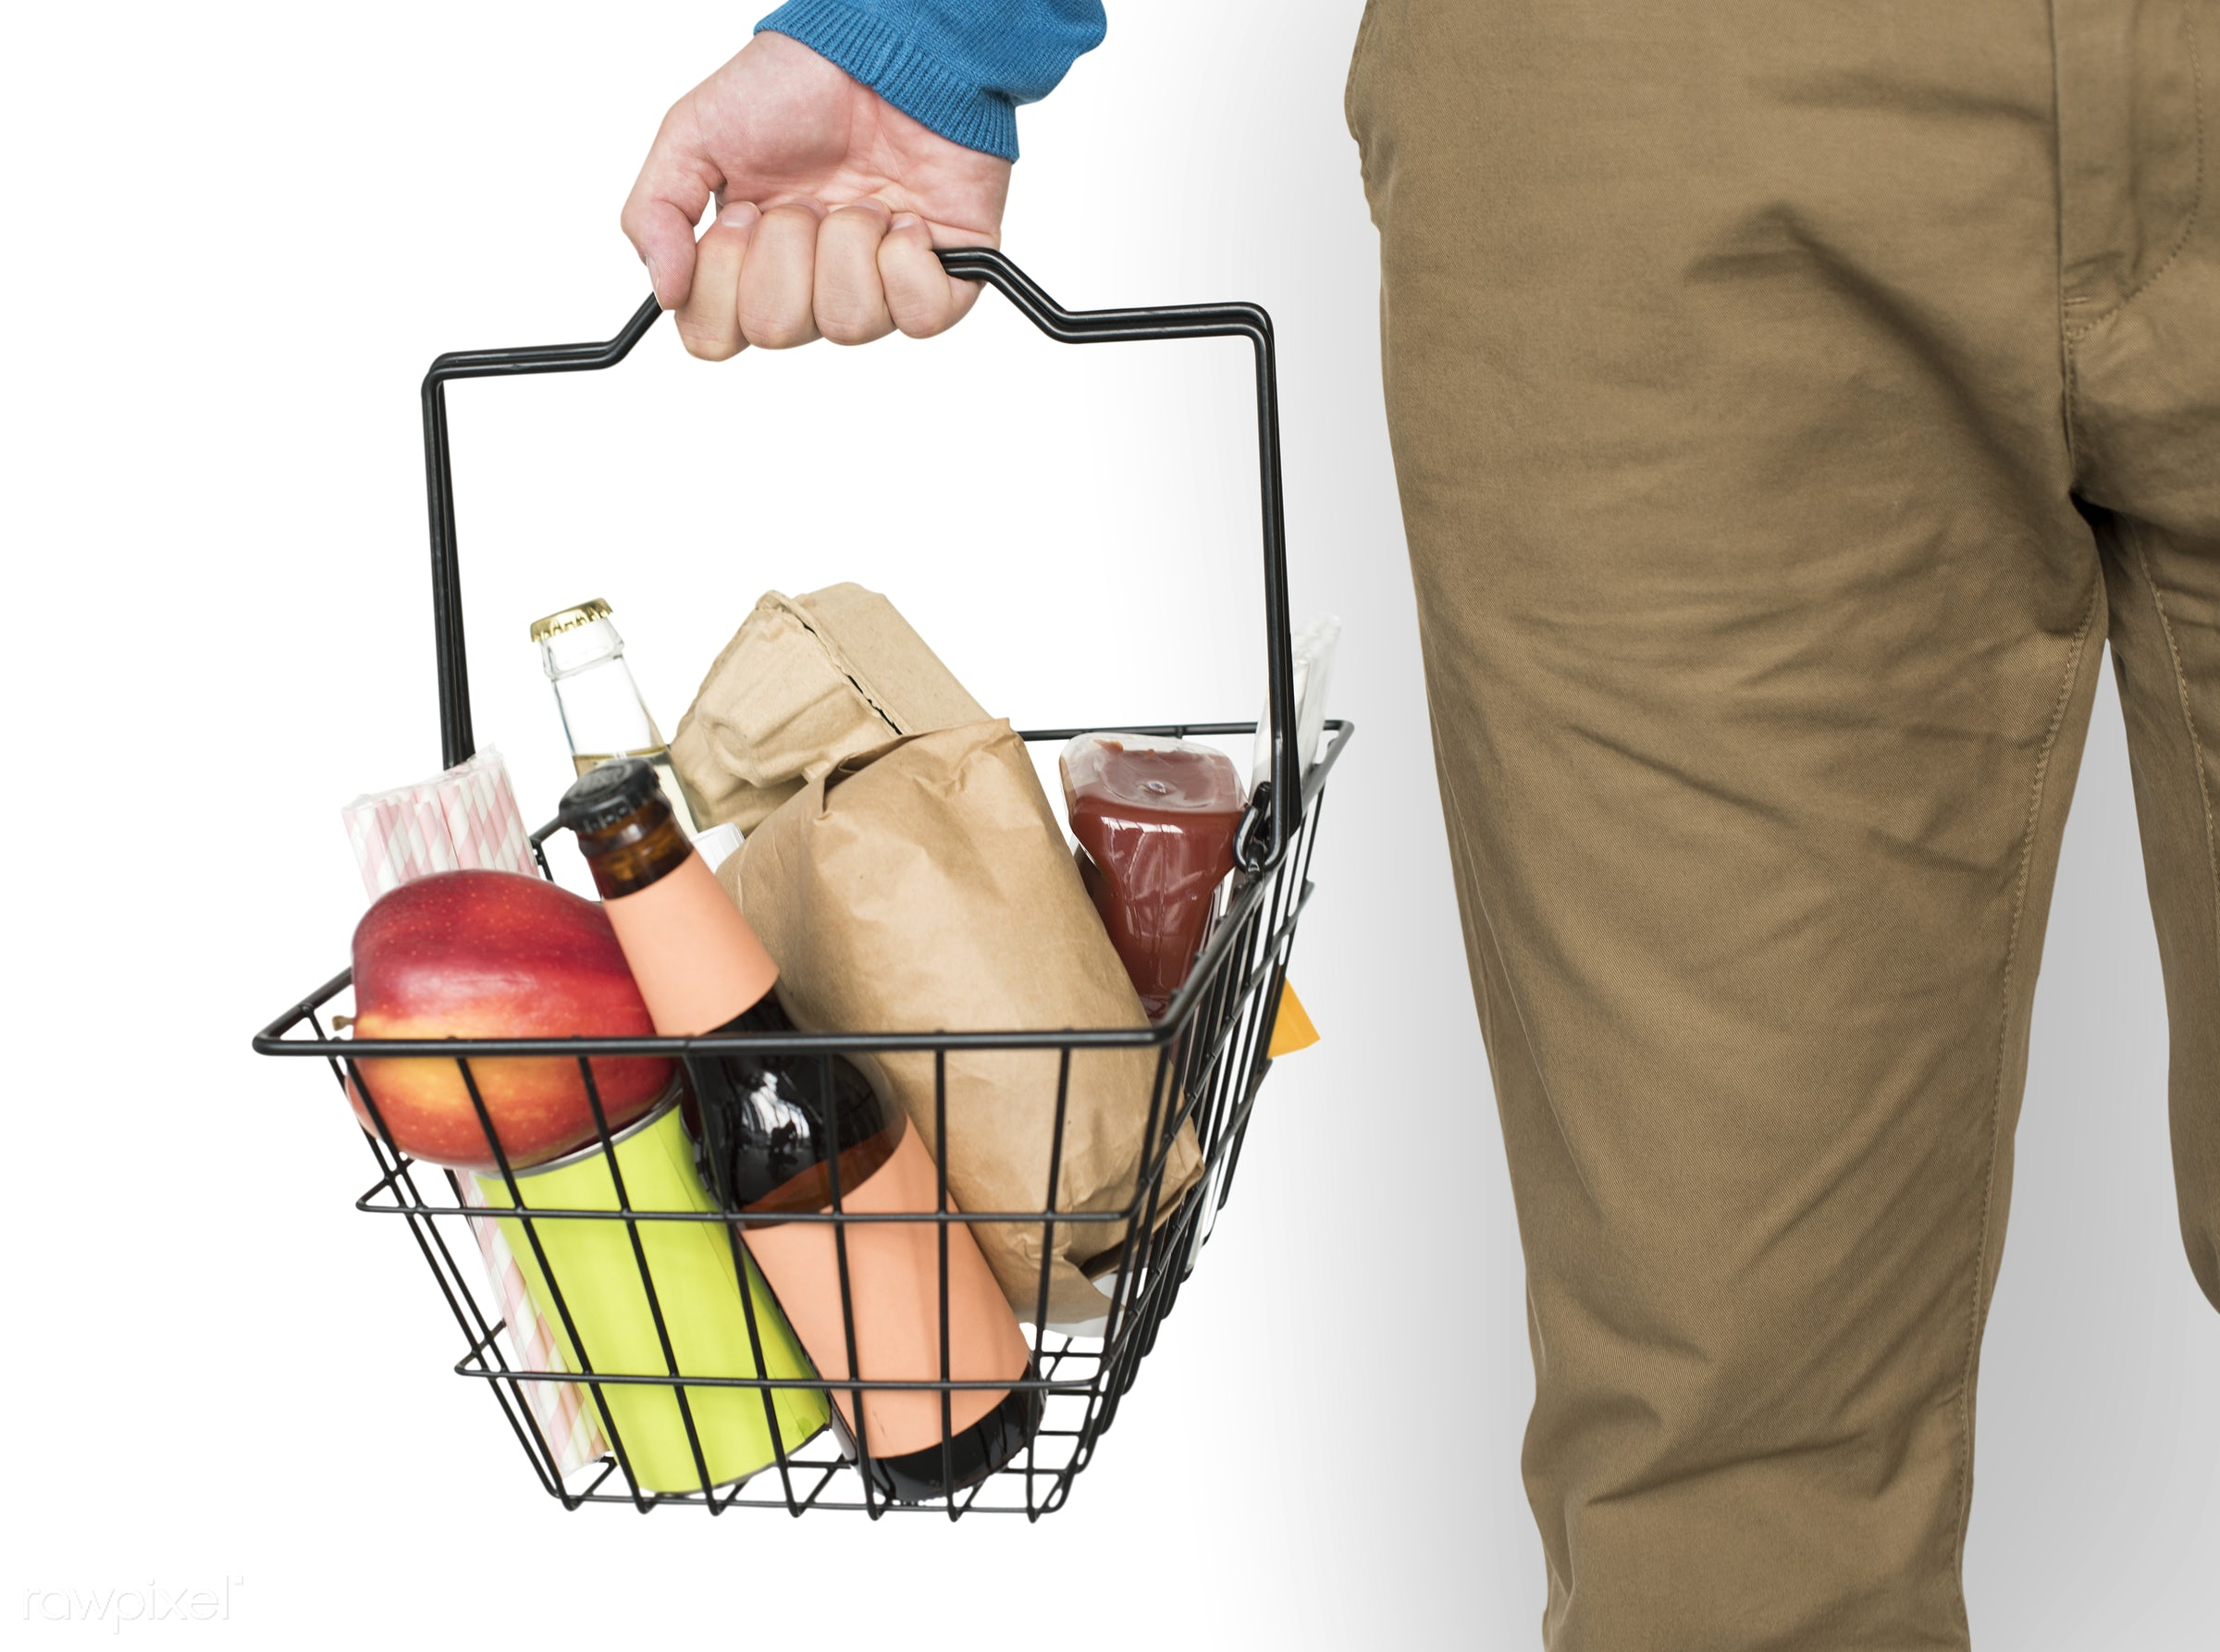 expression, grocery, studio, model, supermarket, person, merchandise, store, holding, isolated on white, consumer, customer...